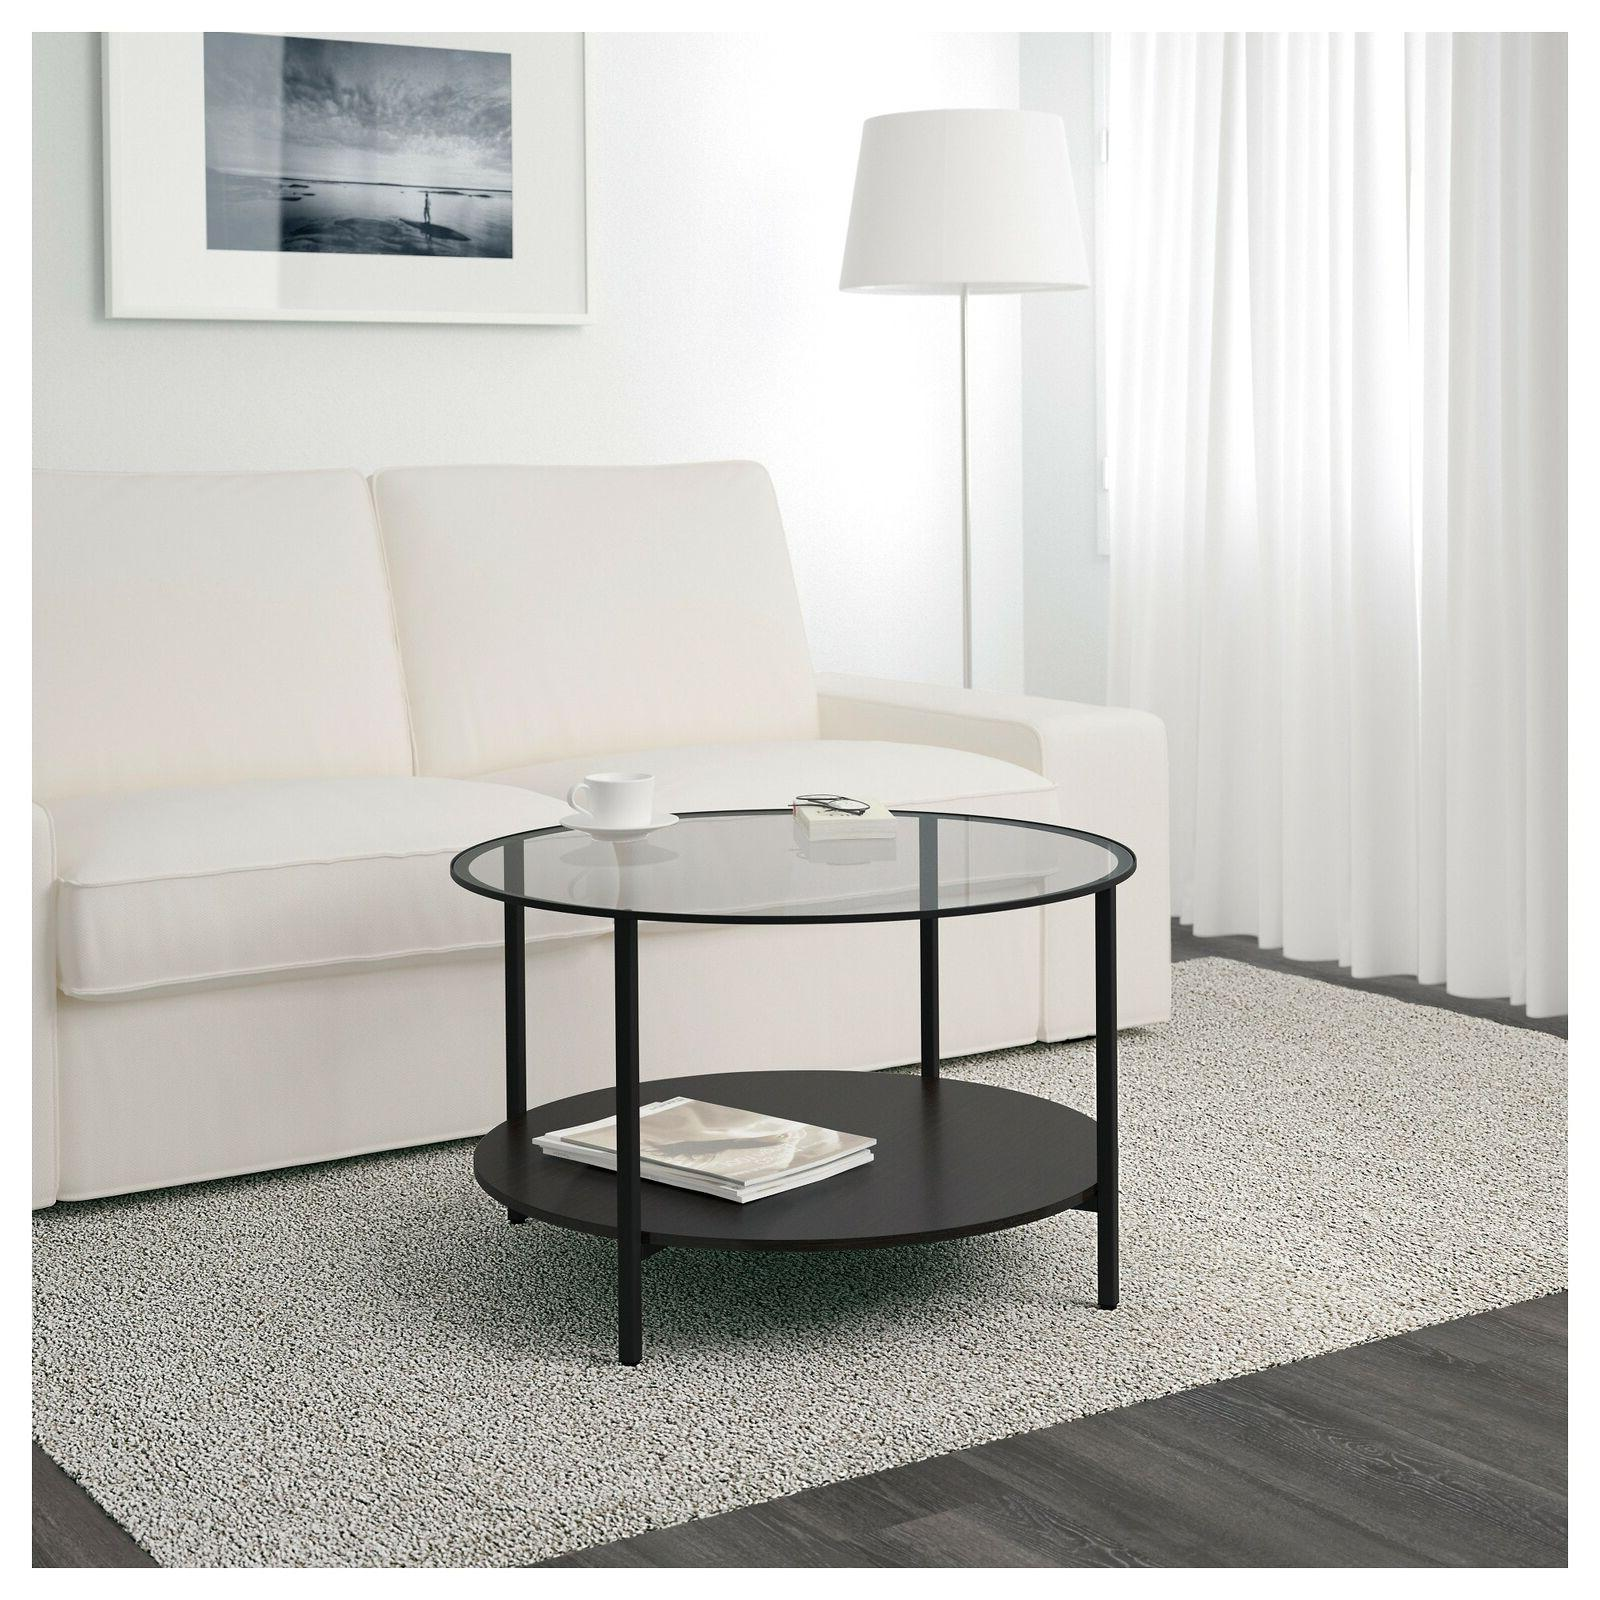 Ikea Vittsjo Coffee Table -